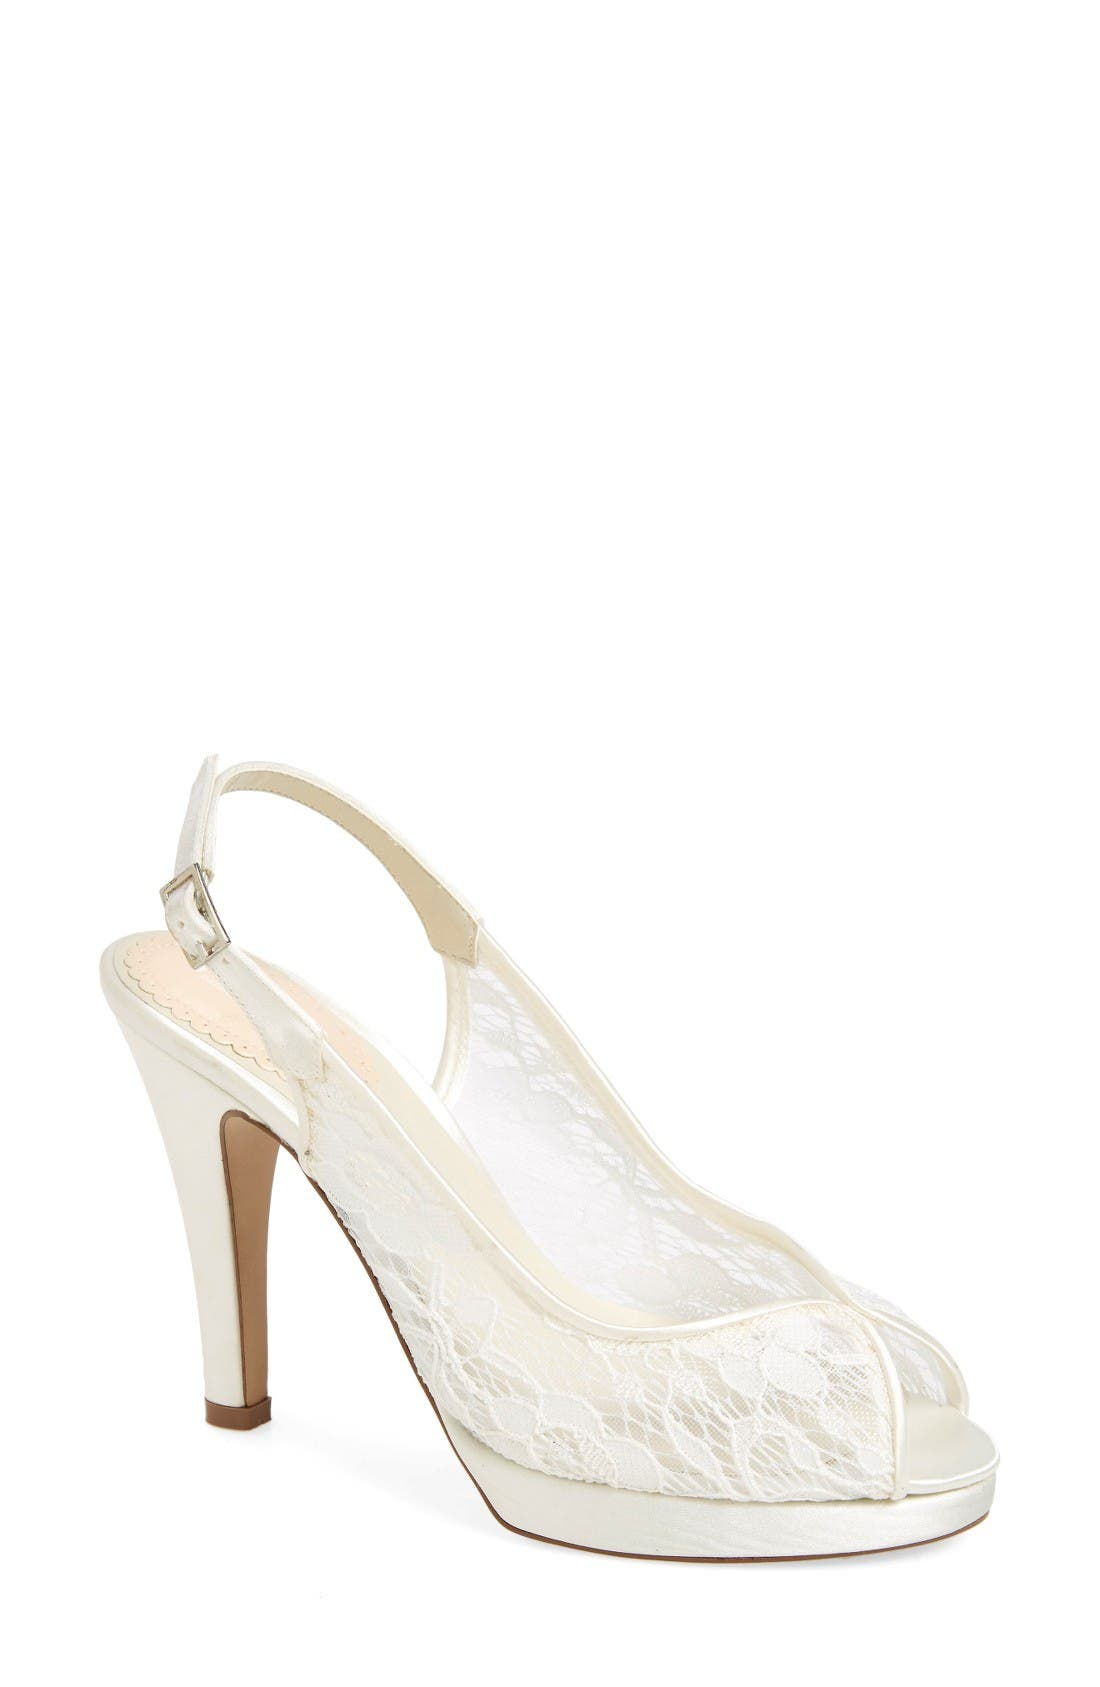 Affinity Lace Open Toe Pump,                             Main thumbnail 1, color,                             Ivory